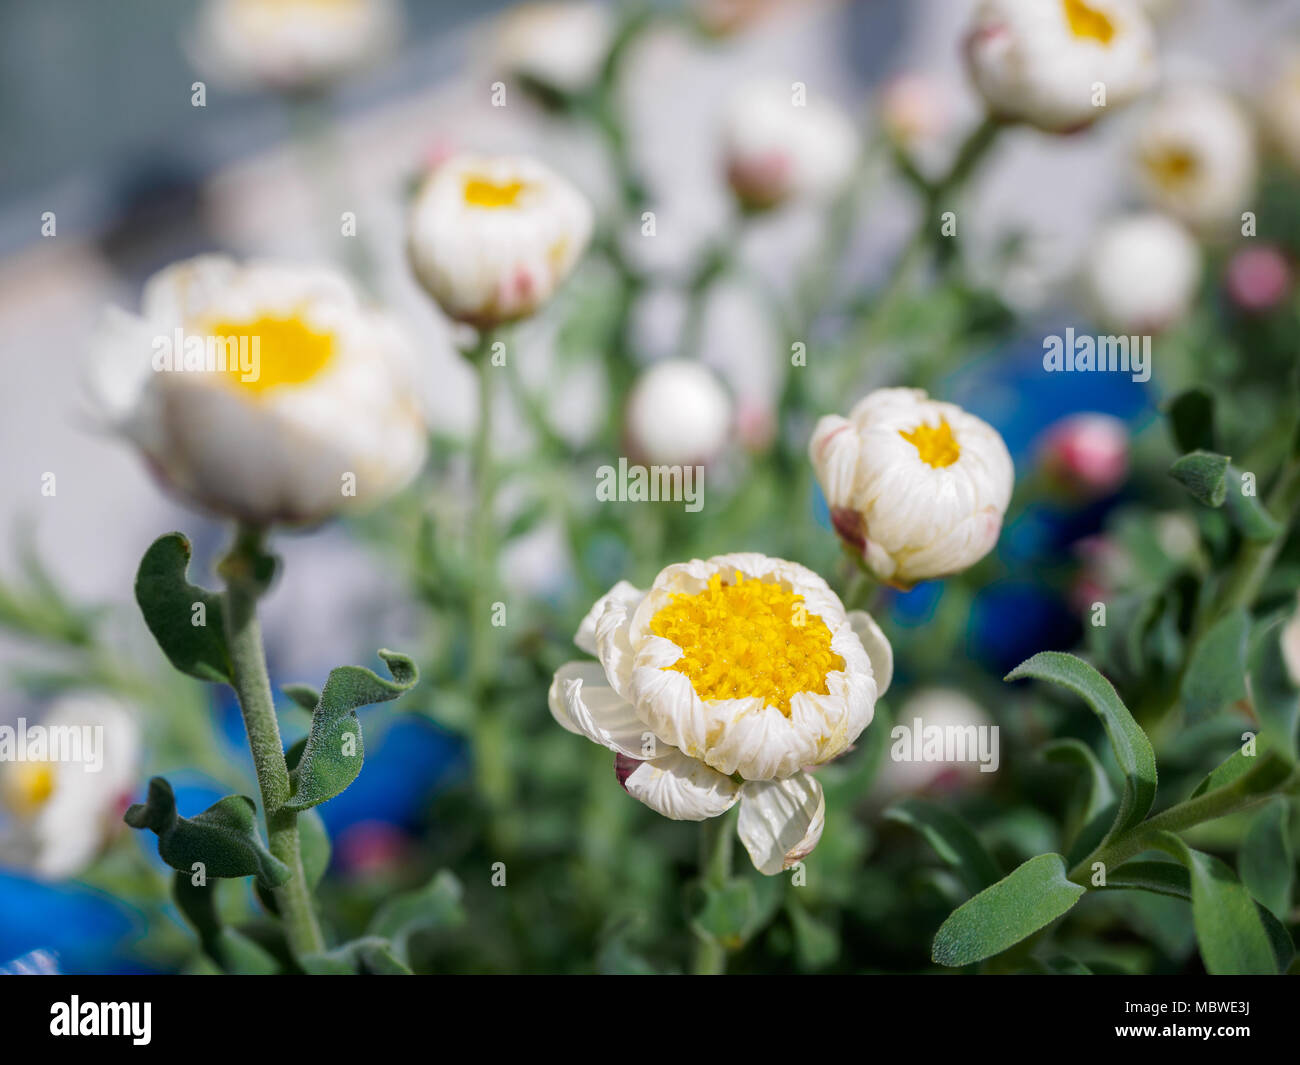 Tiny White And Yellow Flowers With Blur Background In The Garden